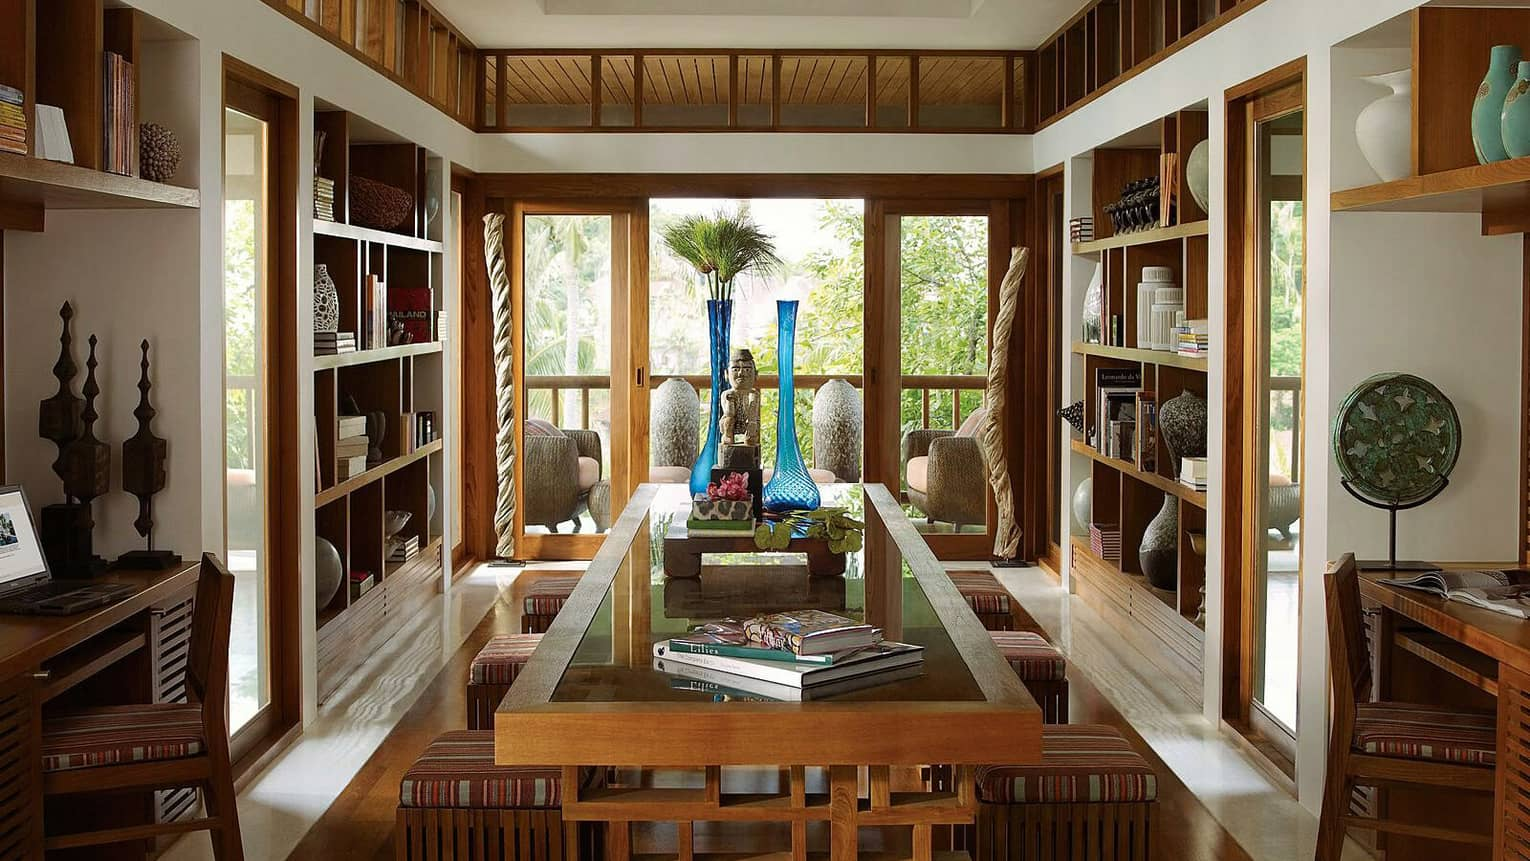 Library with wood shelves, centre table with books, decorative vases